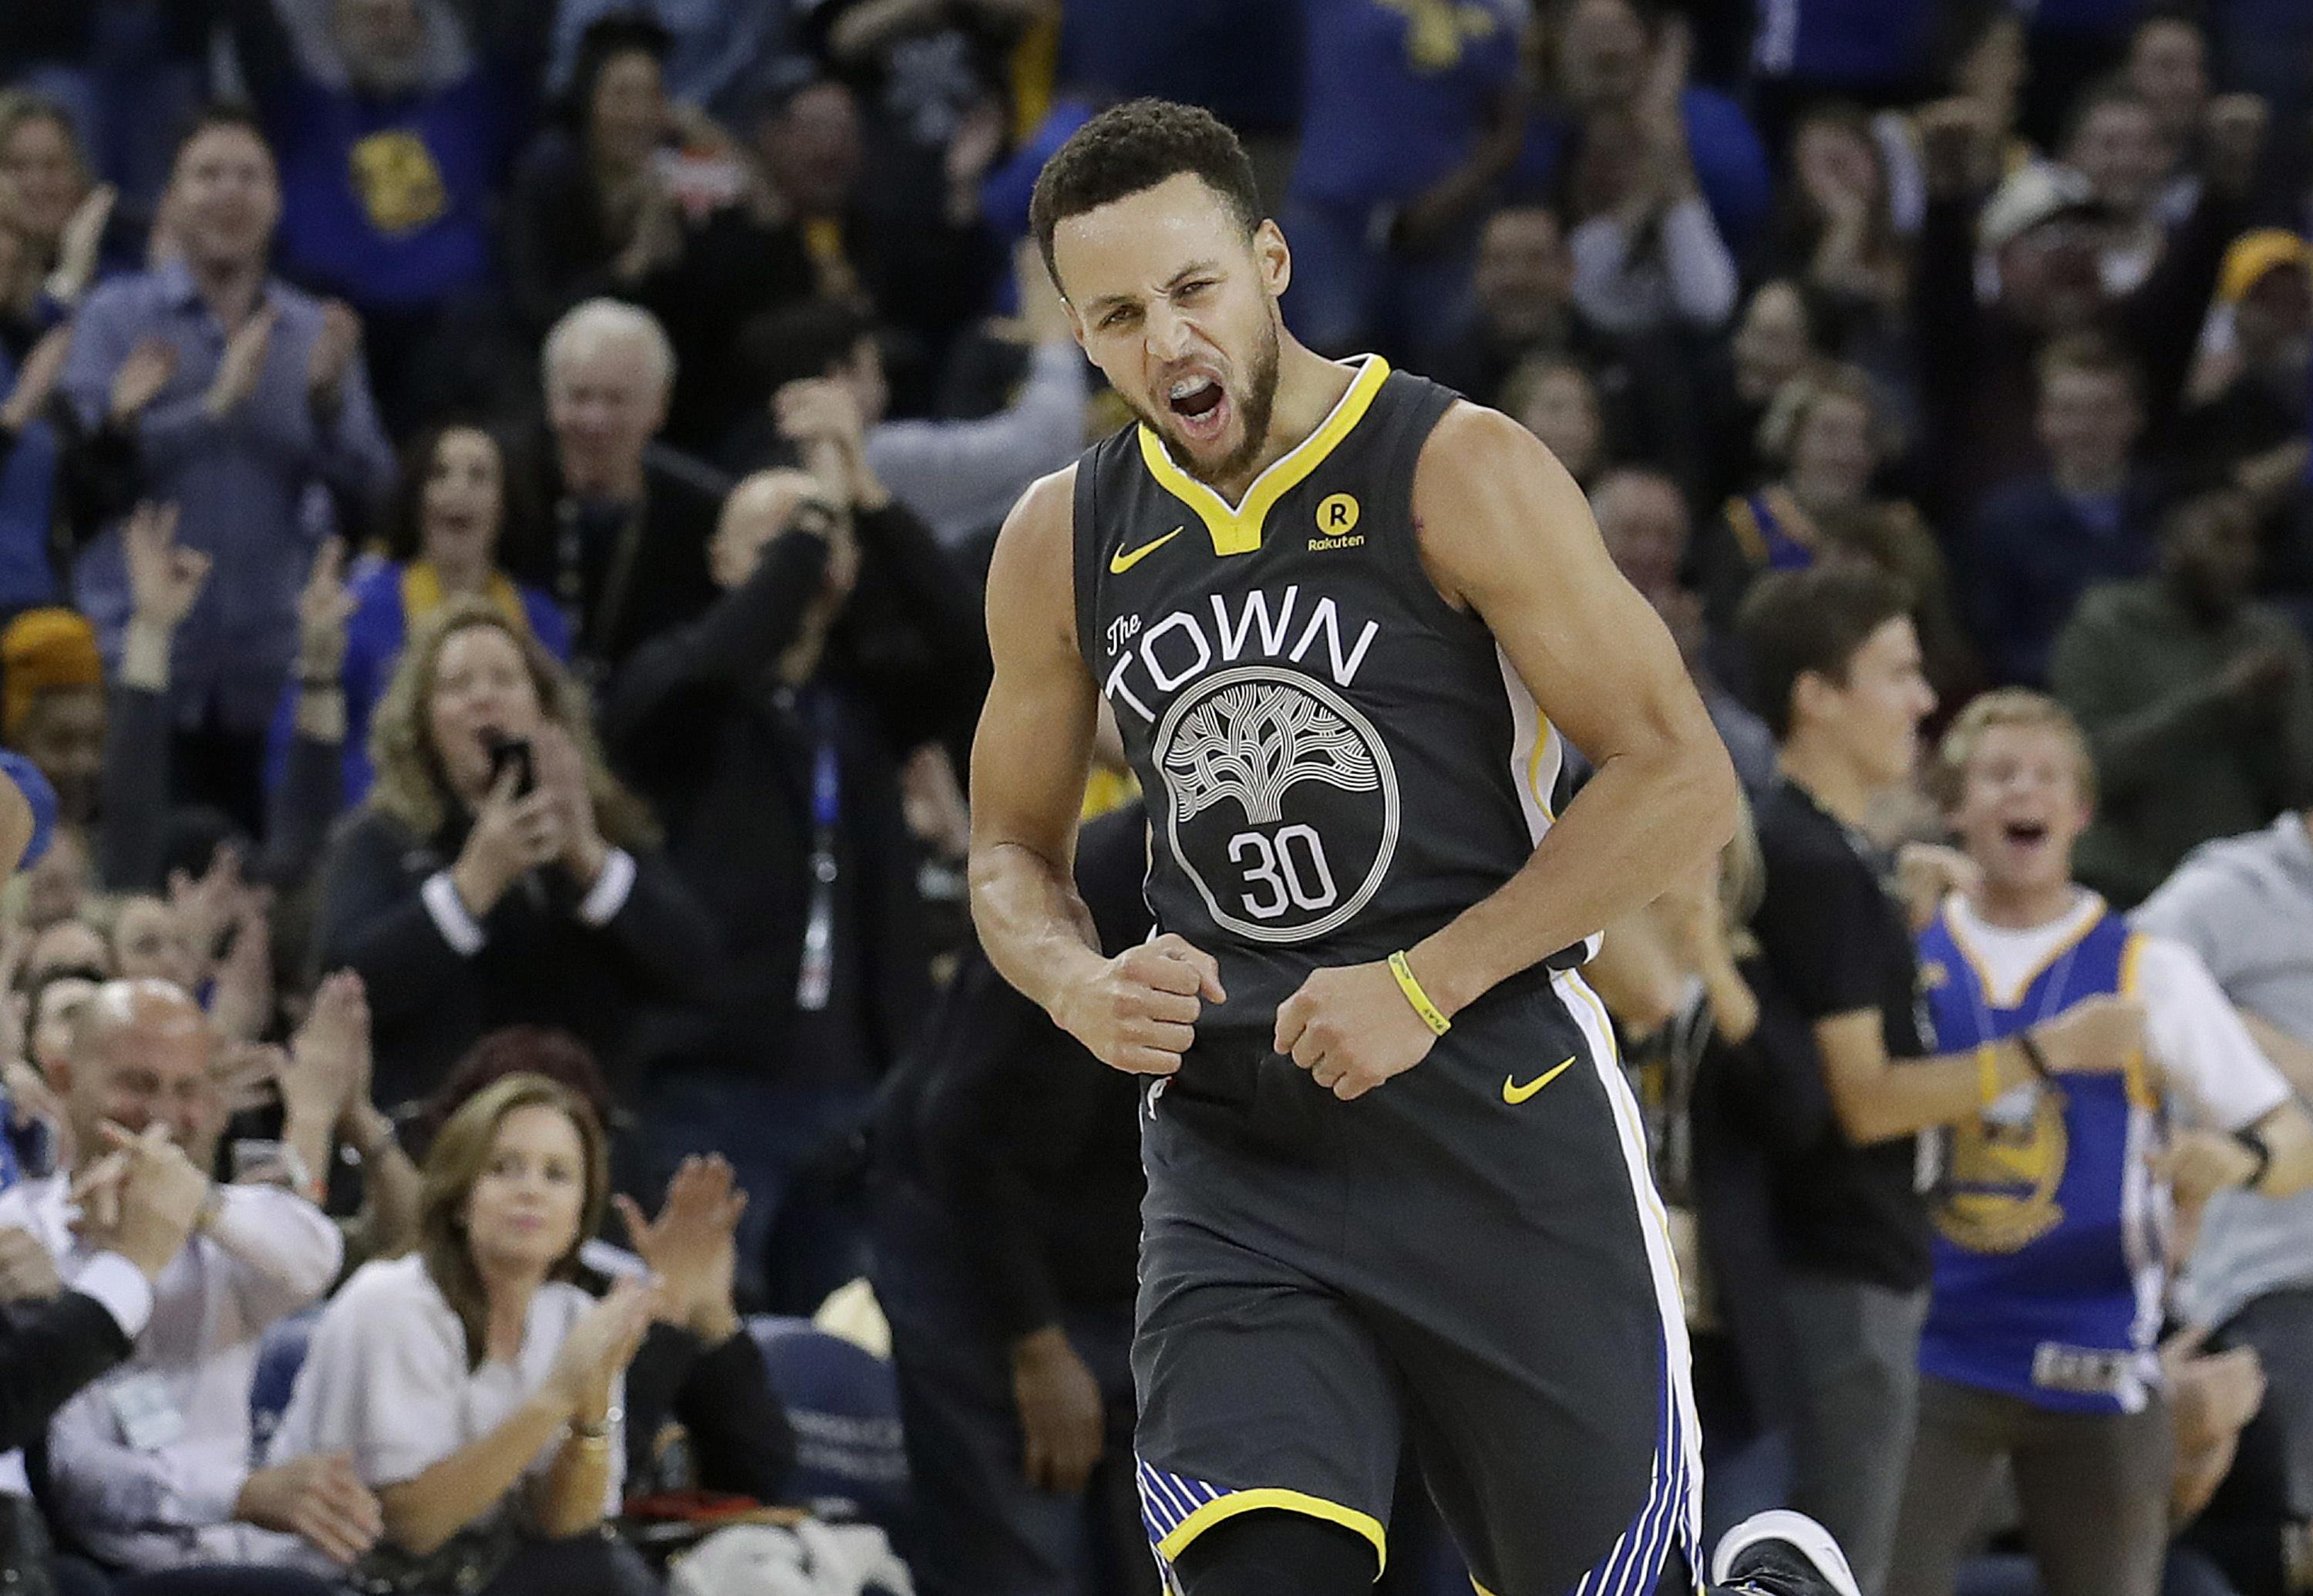 dc82505b1c02 Golden State Warriors guard Stephen Curry reacts after scoring during the  first half against the Memphis